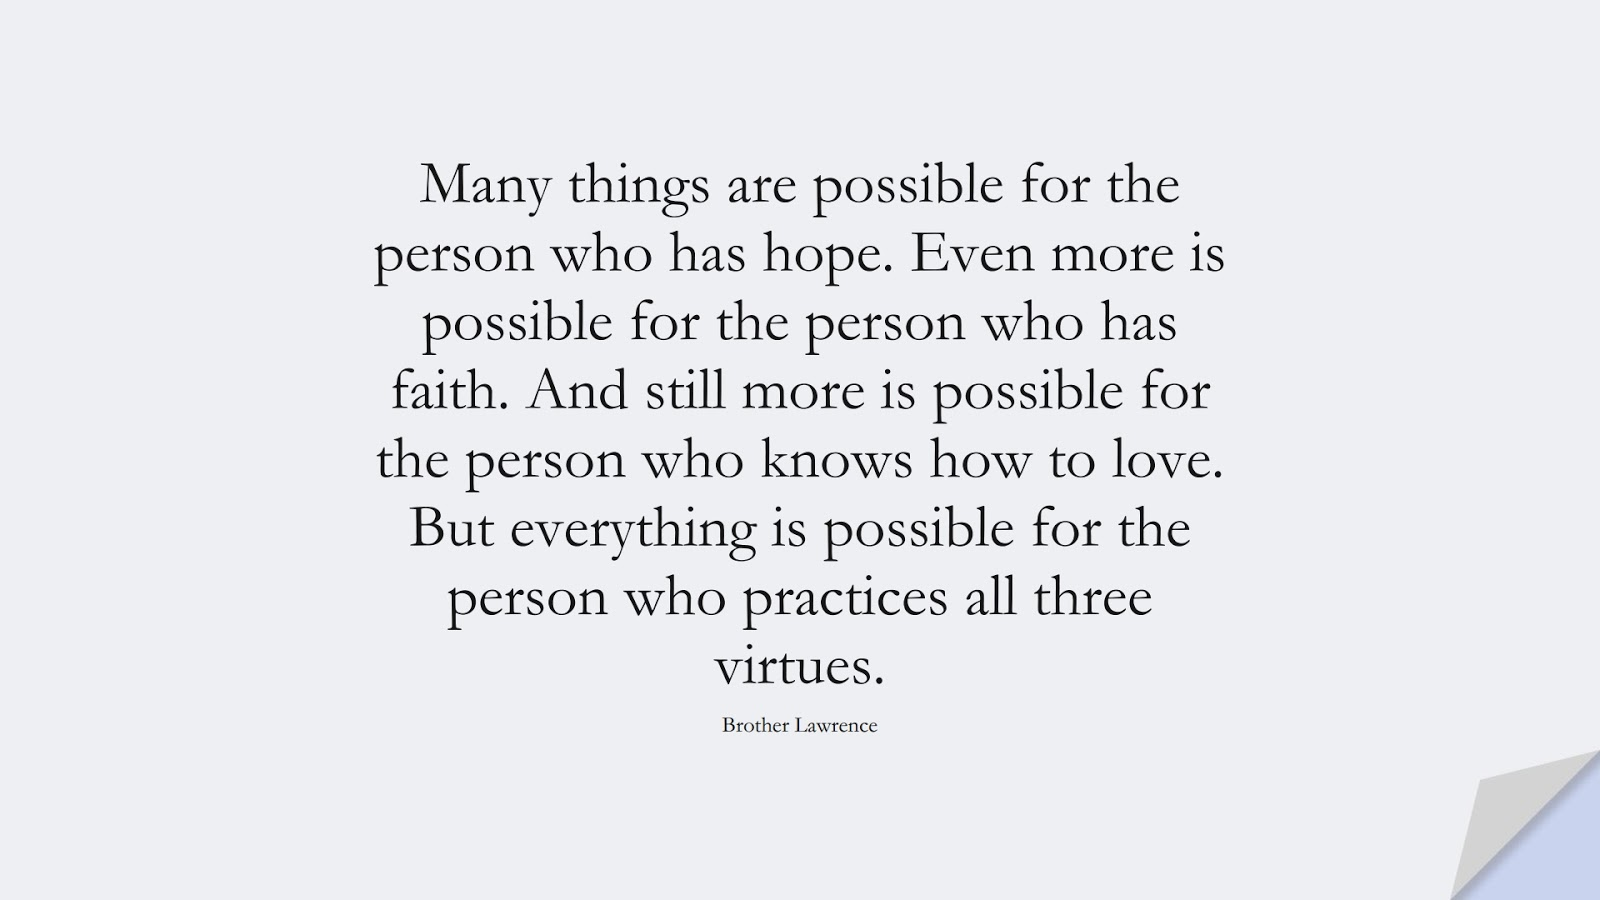 Many things are possible for the person who has hope. Even more is possible for the person who has faith. And still more is possible for the person who knows how to love. But everything is possible for the person who practices all three virtues. (Brother Lawrence);  #HopeQuotes